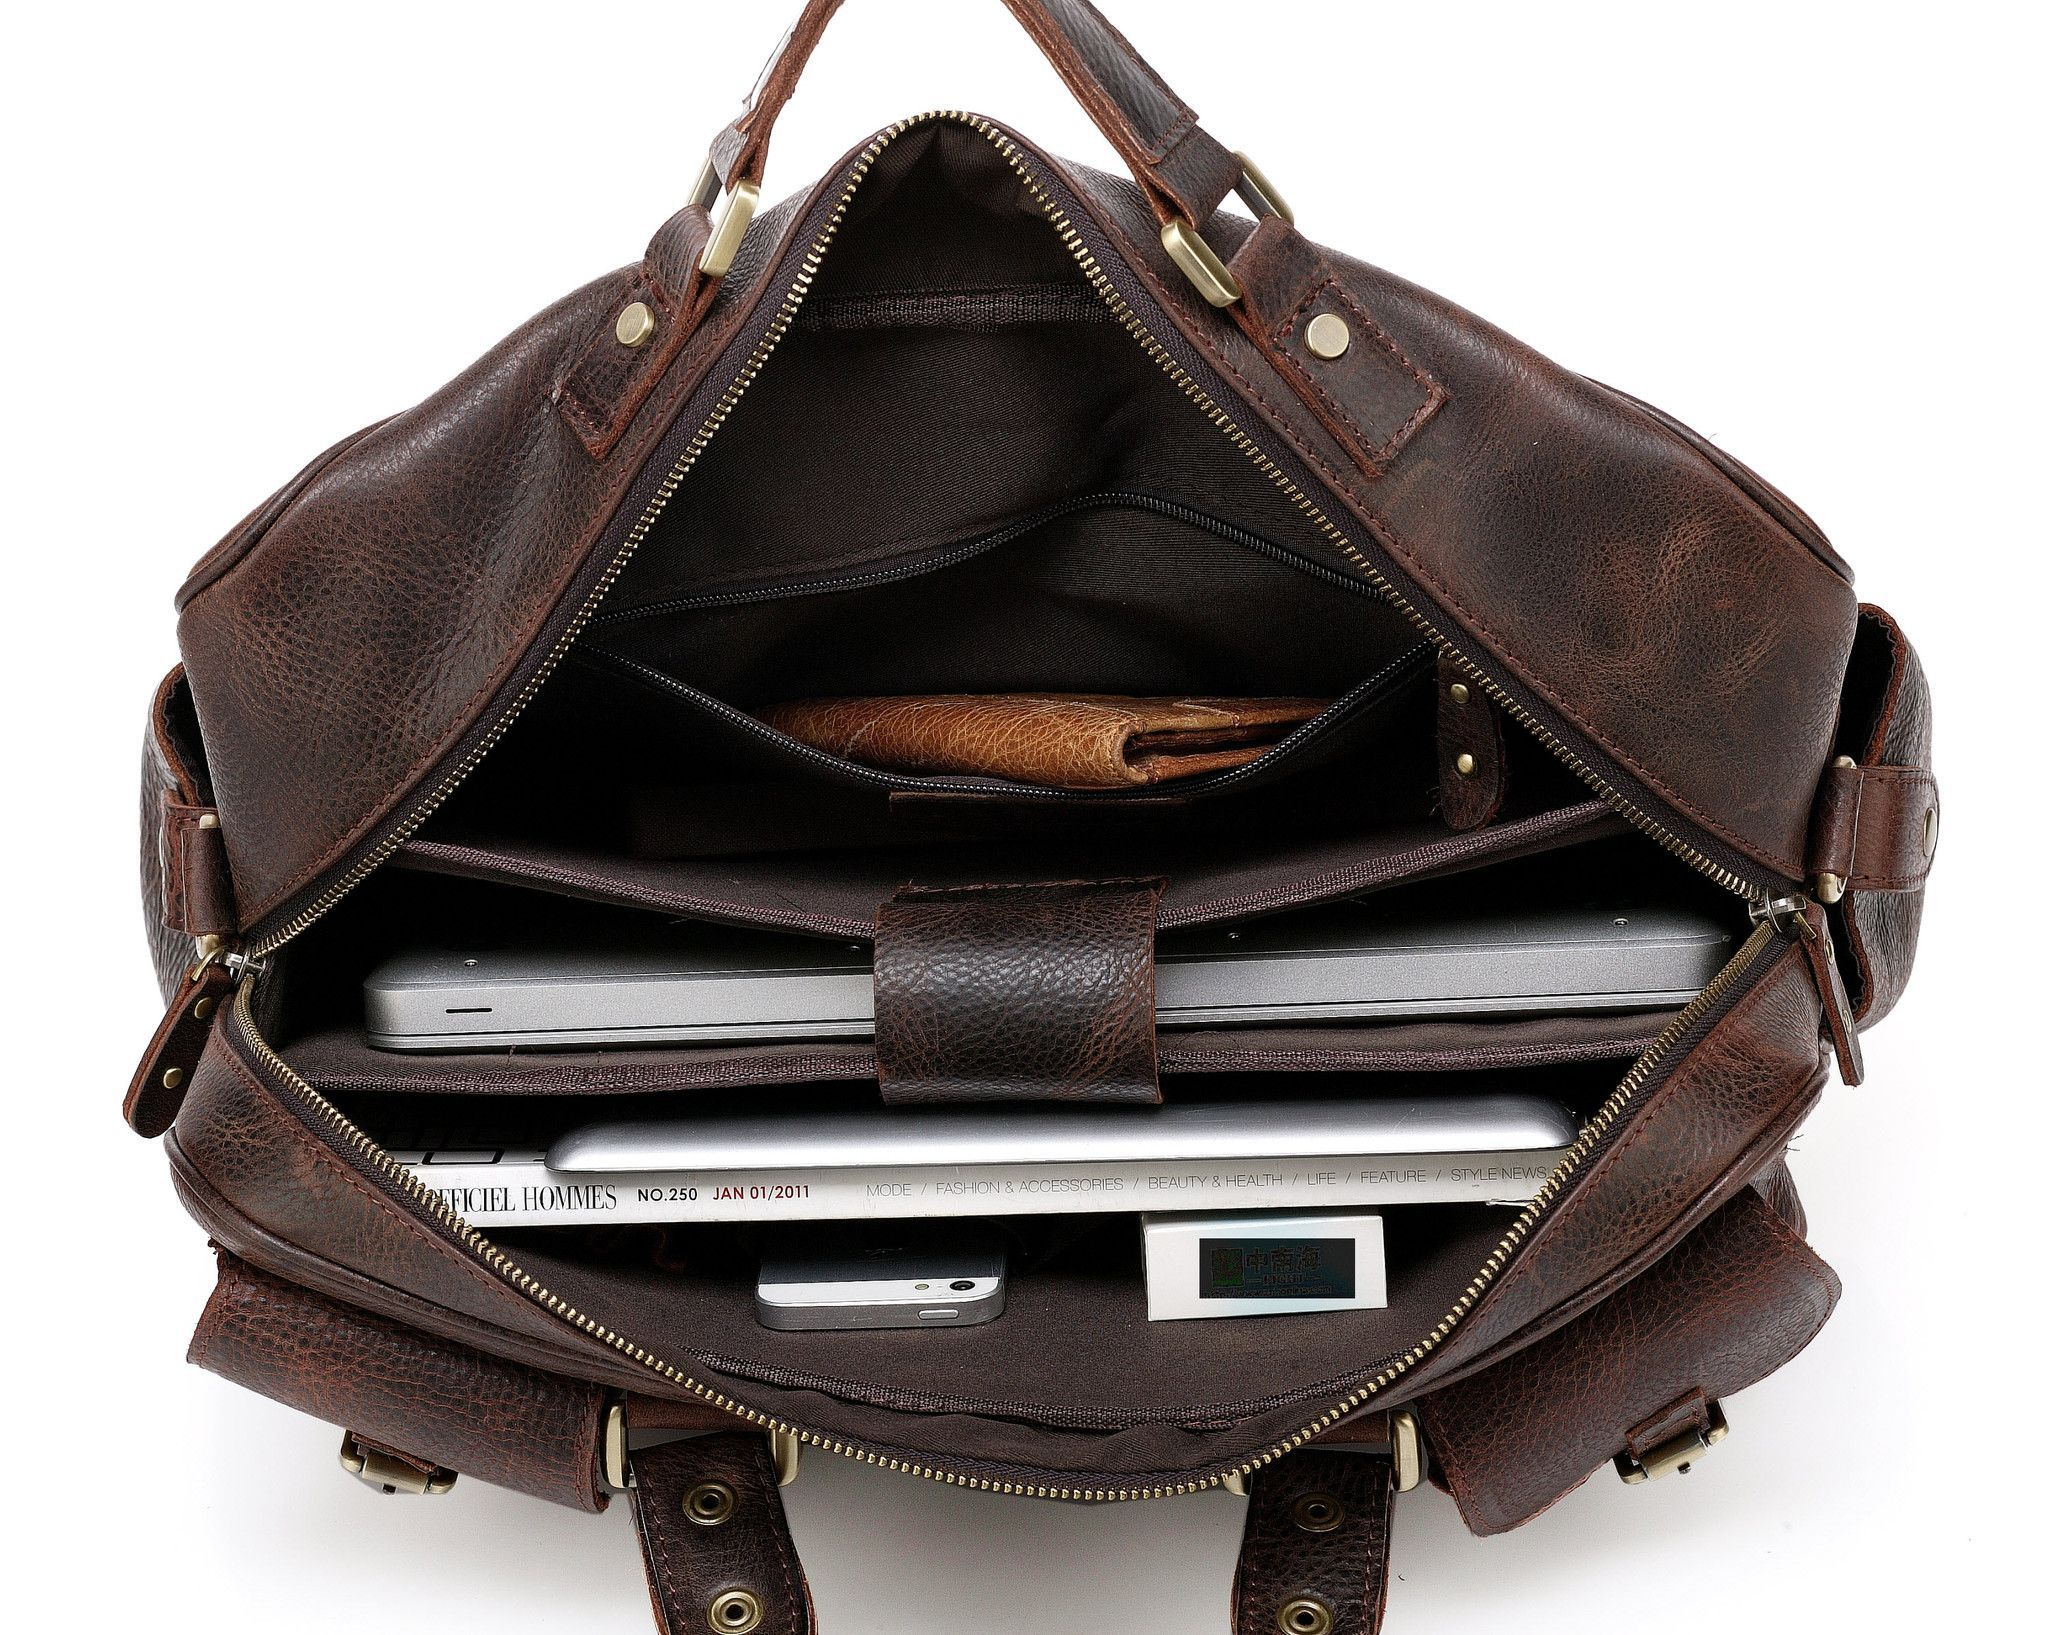 Made of full grain leather and manufactured with expert workmanship.Serves multiple purposes: laptop bag, messenger bag, shoulder bag and briefcase.Rugged and durable. Finished with durable hardware.Easily accessible exterior pockets...